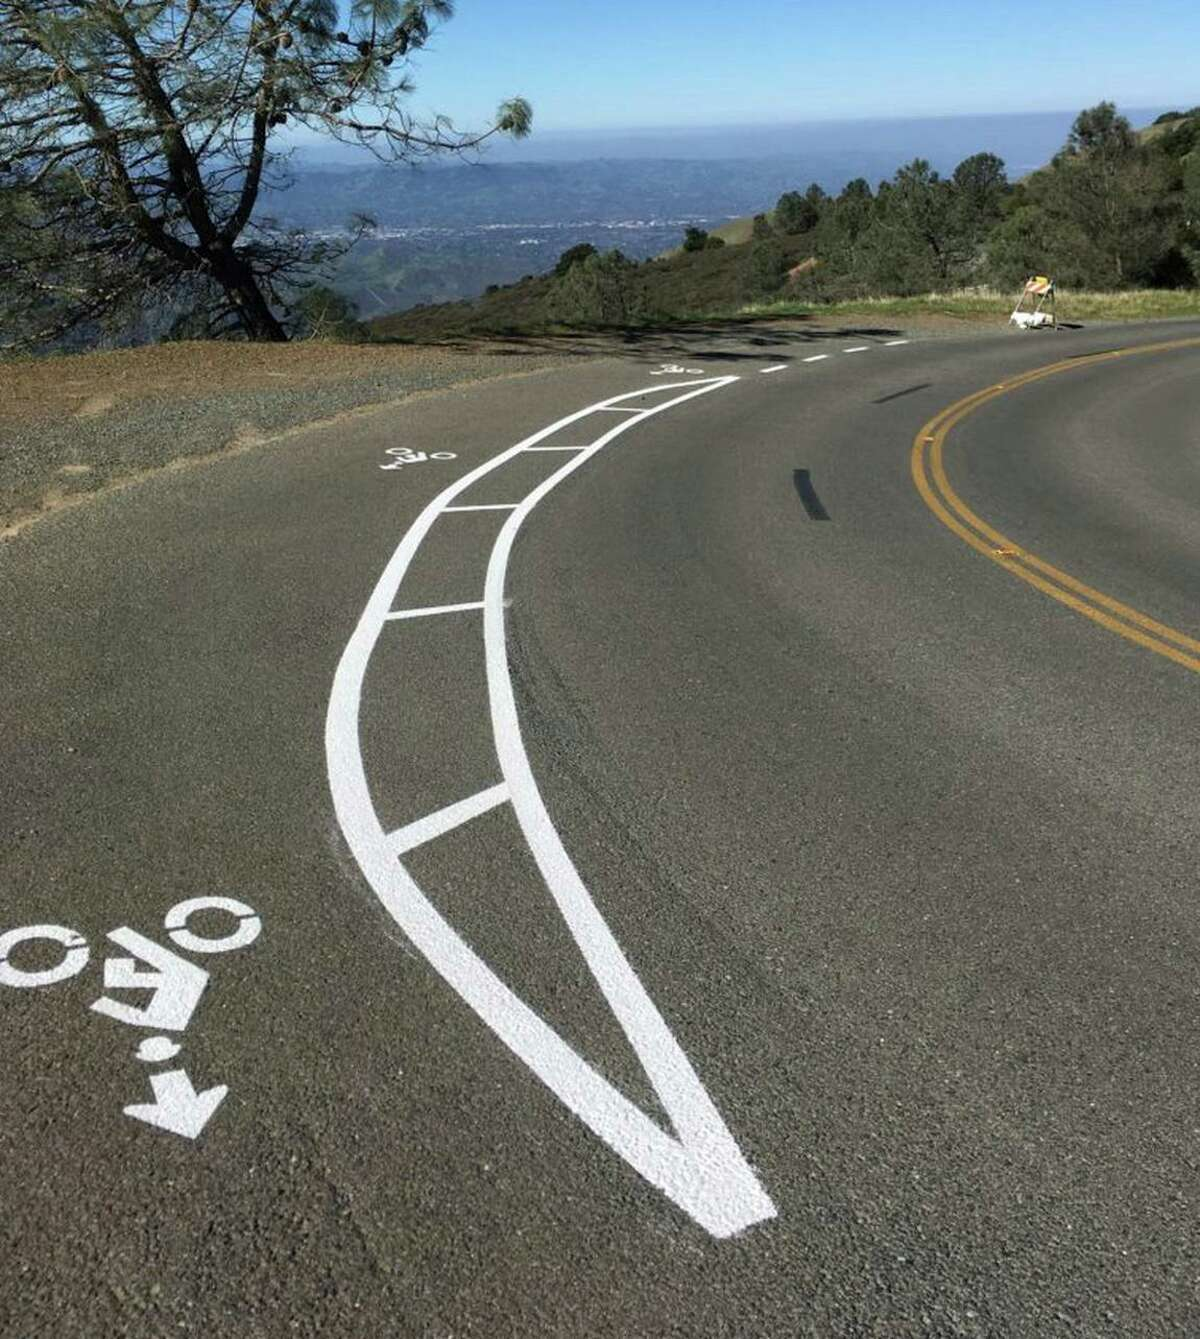 A prototype of one of the first bicycle turnouts on the road to the Mount Diablo Summit to allow cyclists grinding uphill a safe way for vehicles to pass.